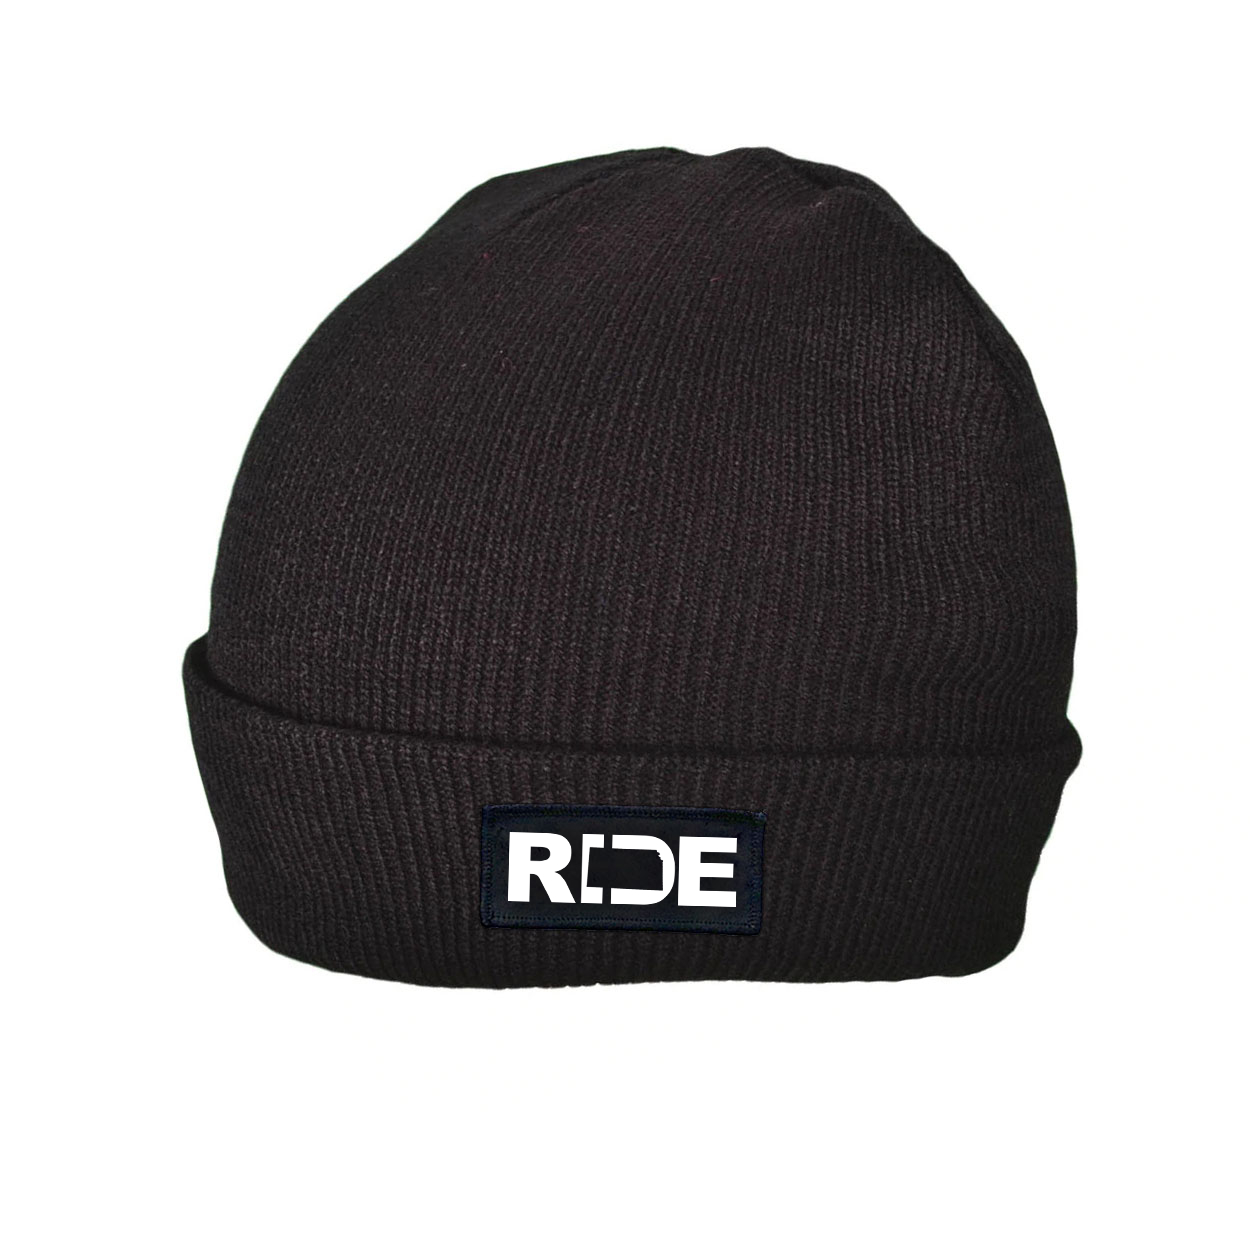 Ride Kansas Night Out Woven Patch Roll Up Skully Beanie Black (White Logo)